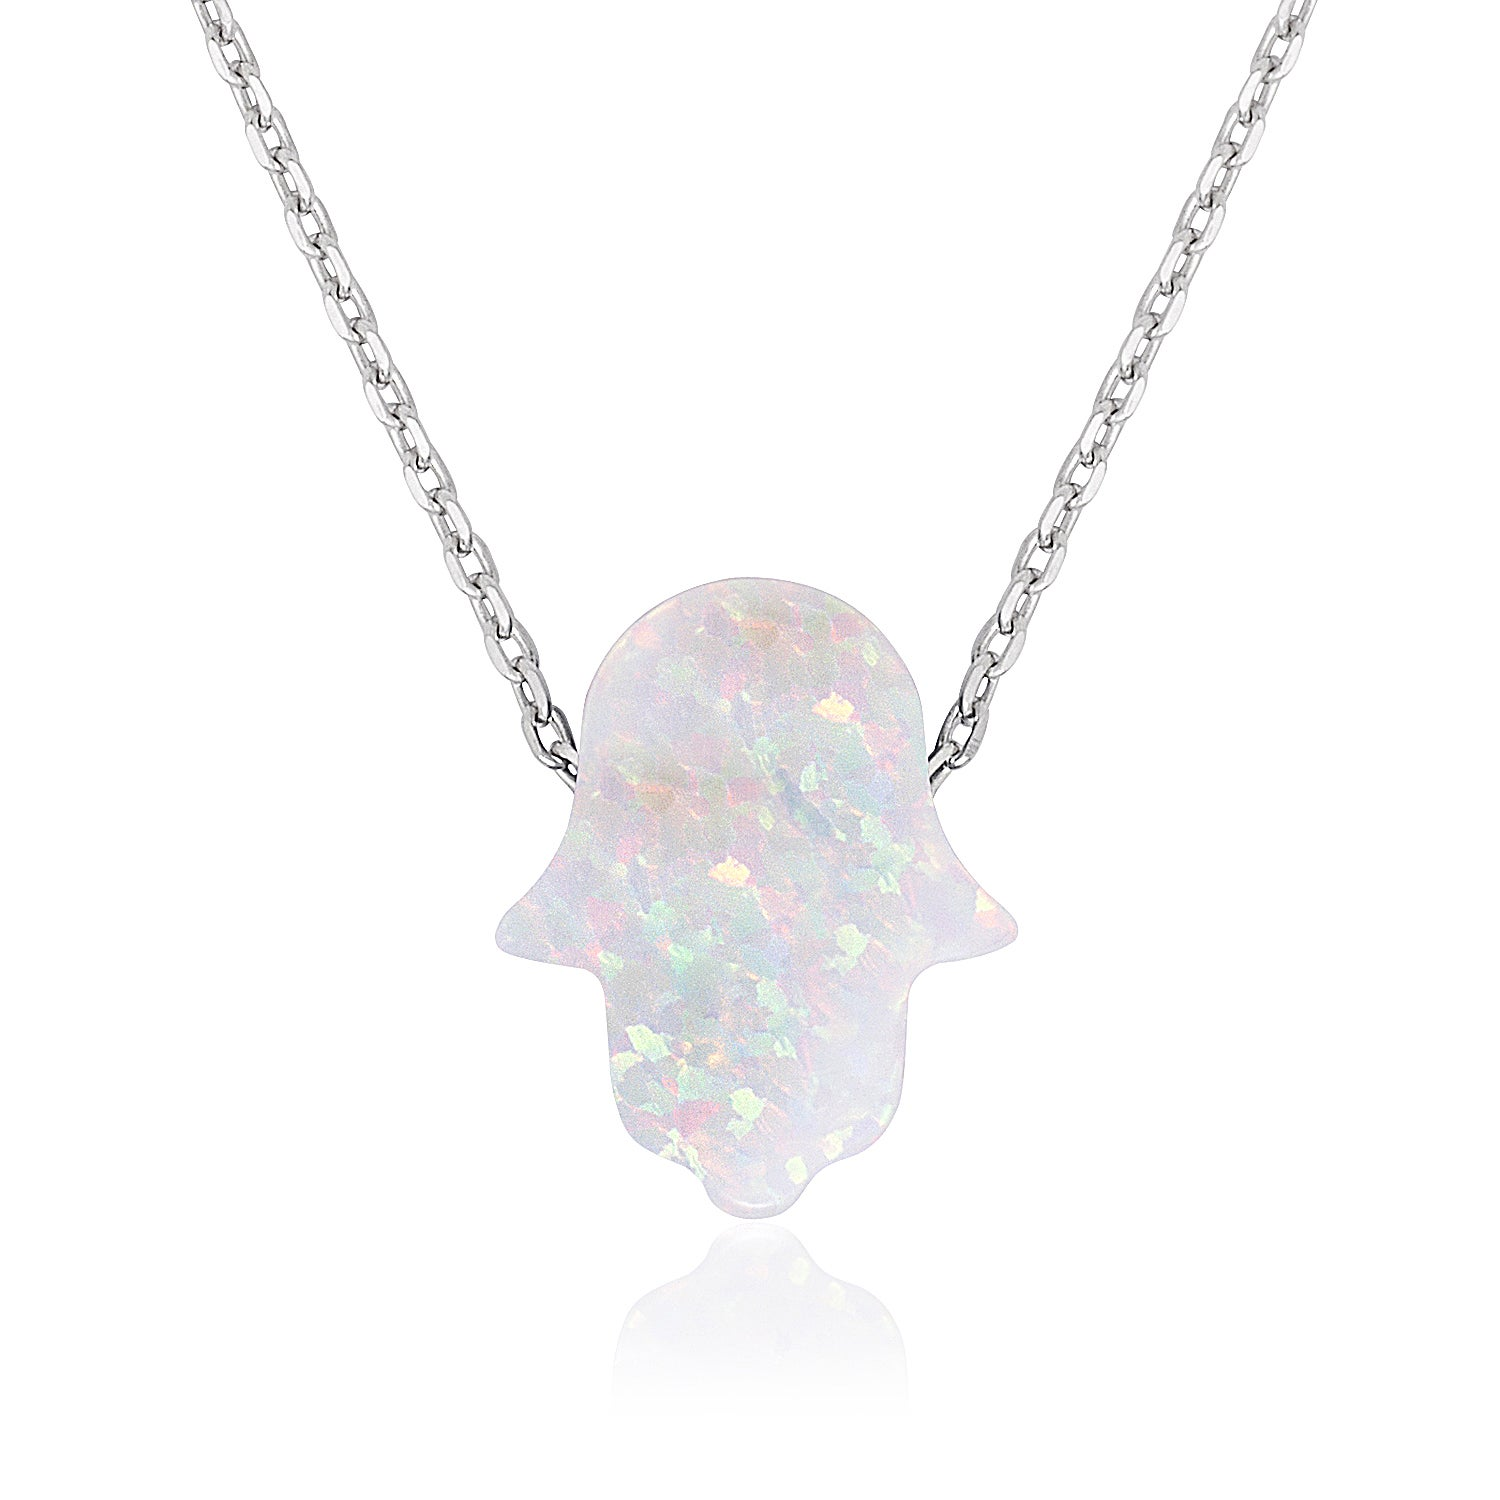 necklace white kendra in default kyocera opal elisa necklaces pendant categories scott jewelry lg silver